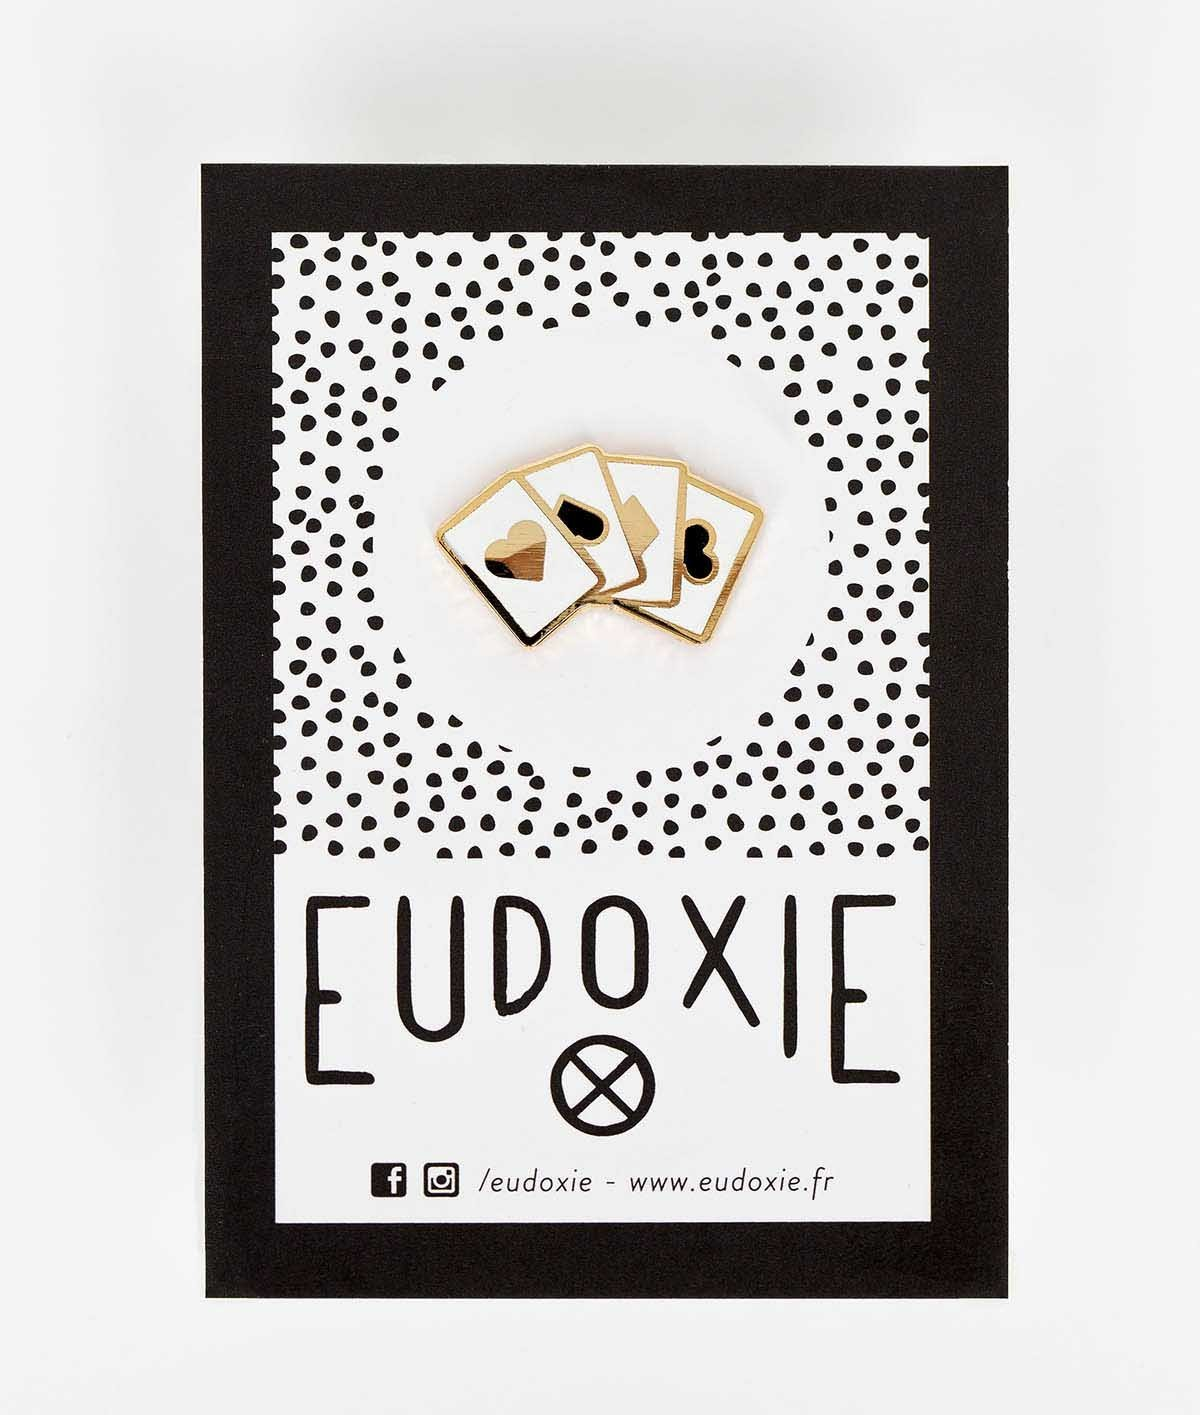 Eudoxie - Eudoxie Cards Pin - Accessories - Salt Flats Clothing